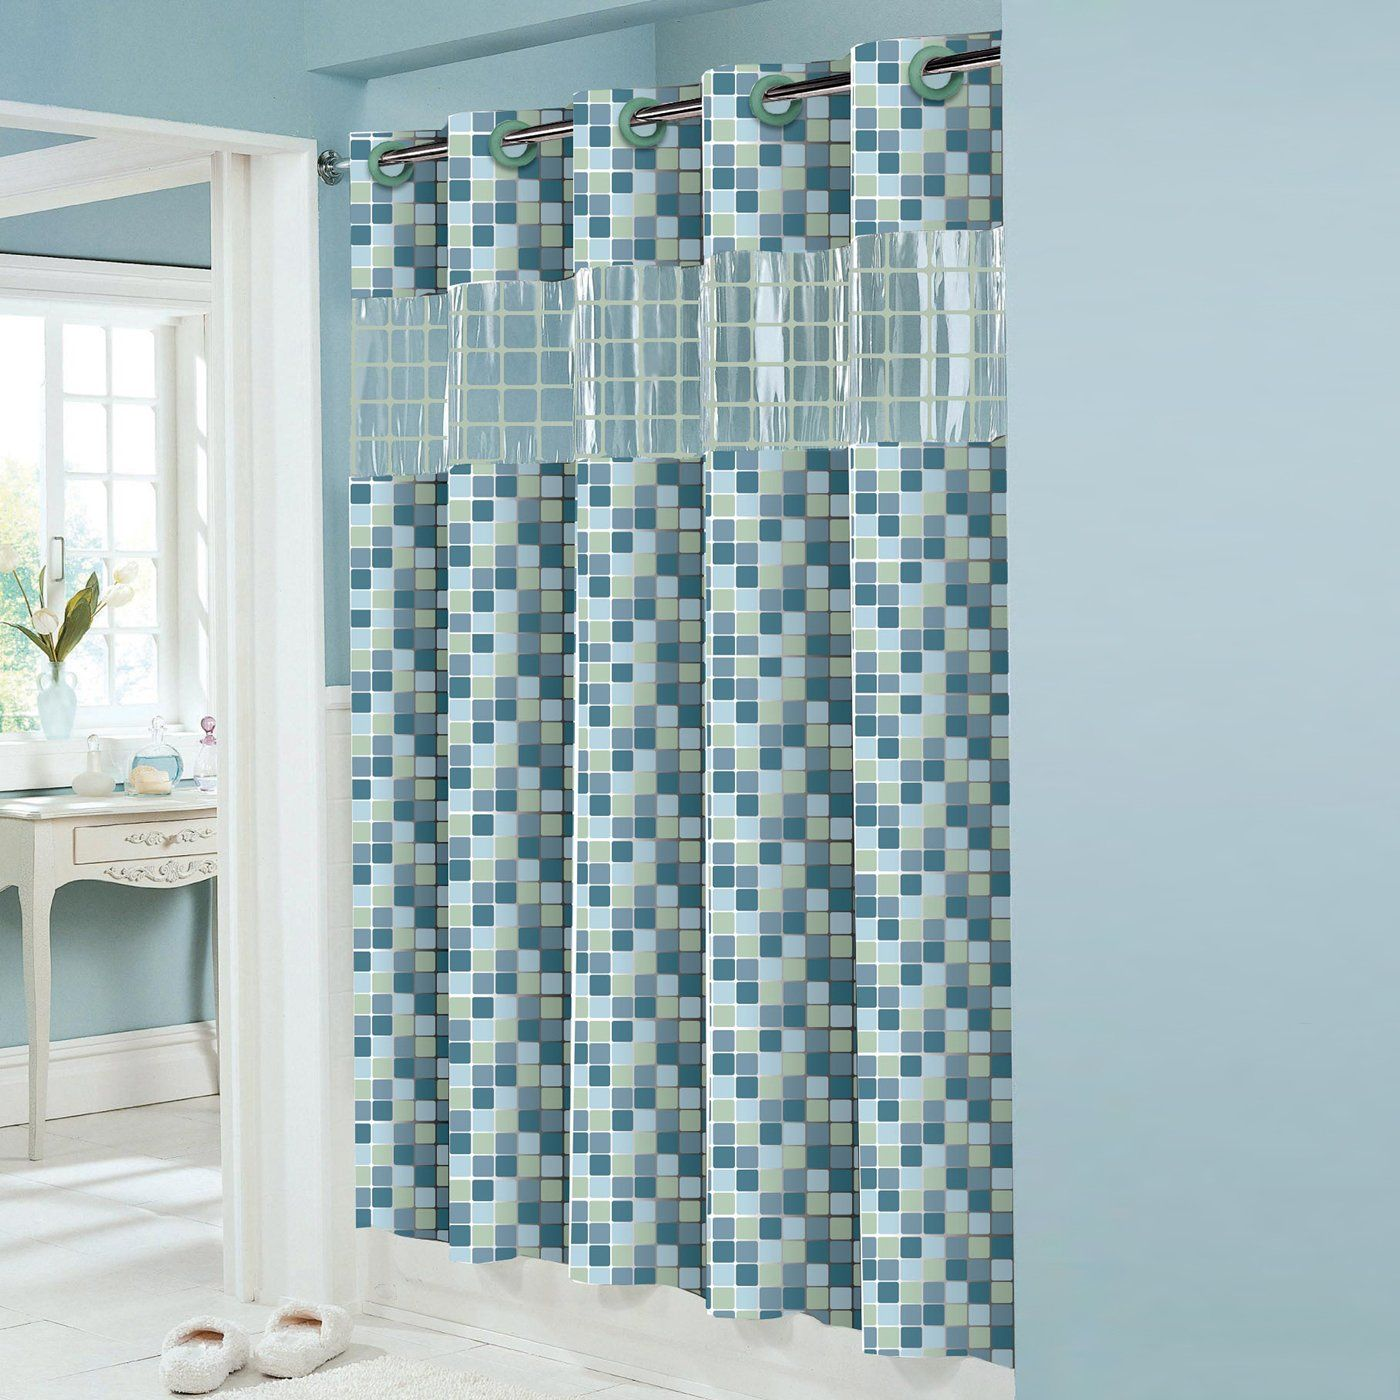 Hookless RBH14HH09 Peva Mosaic Shower Curtain at ATG Stores | Farm ...